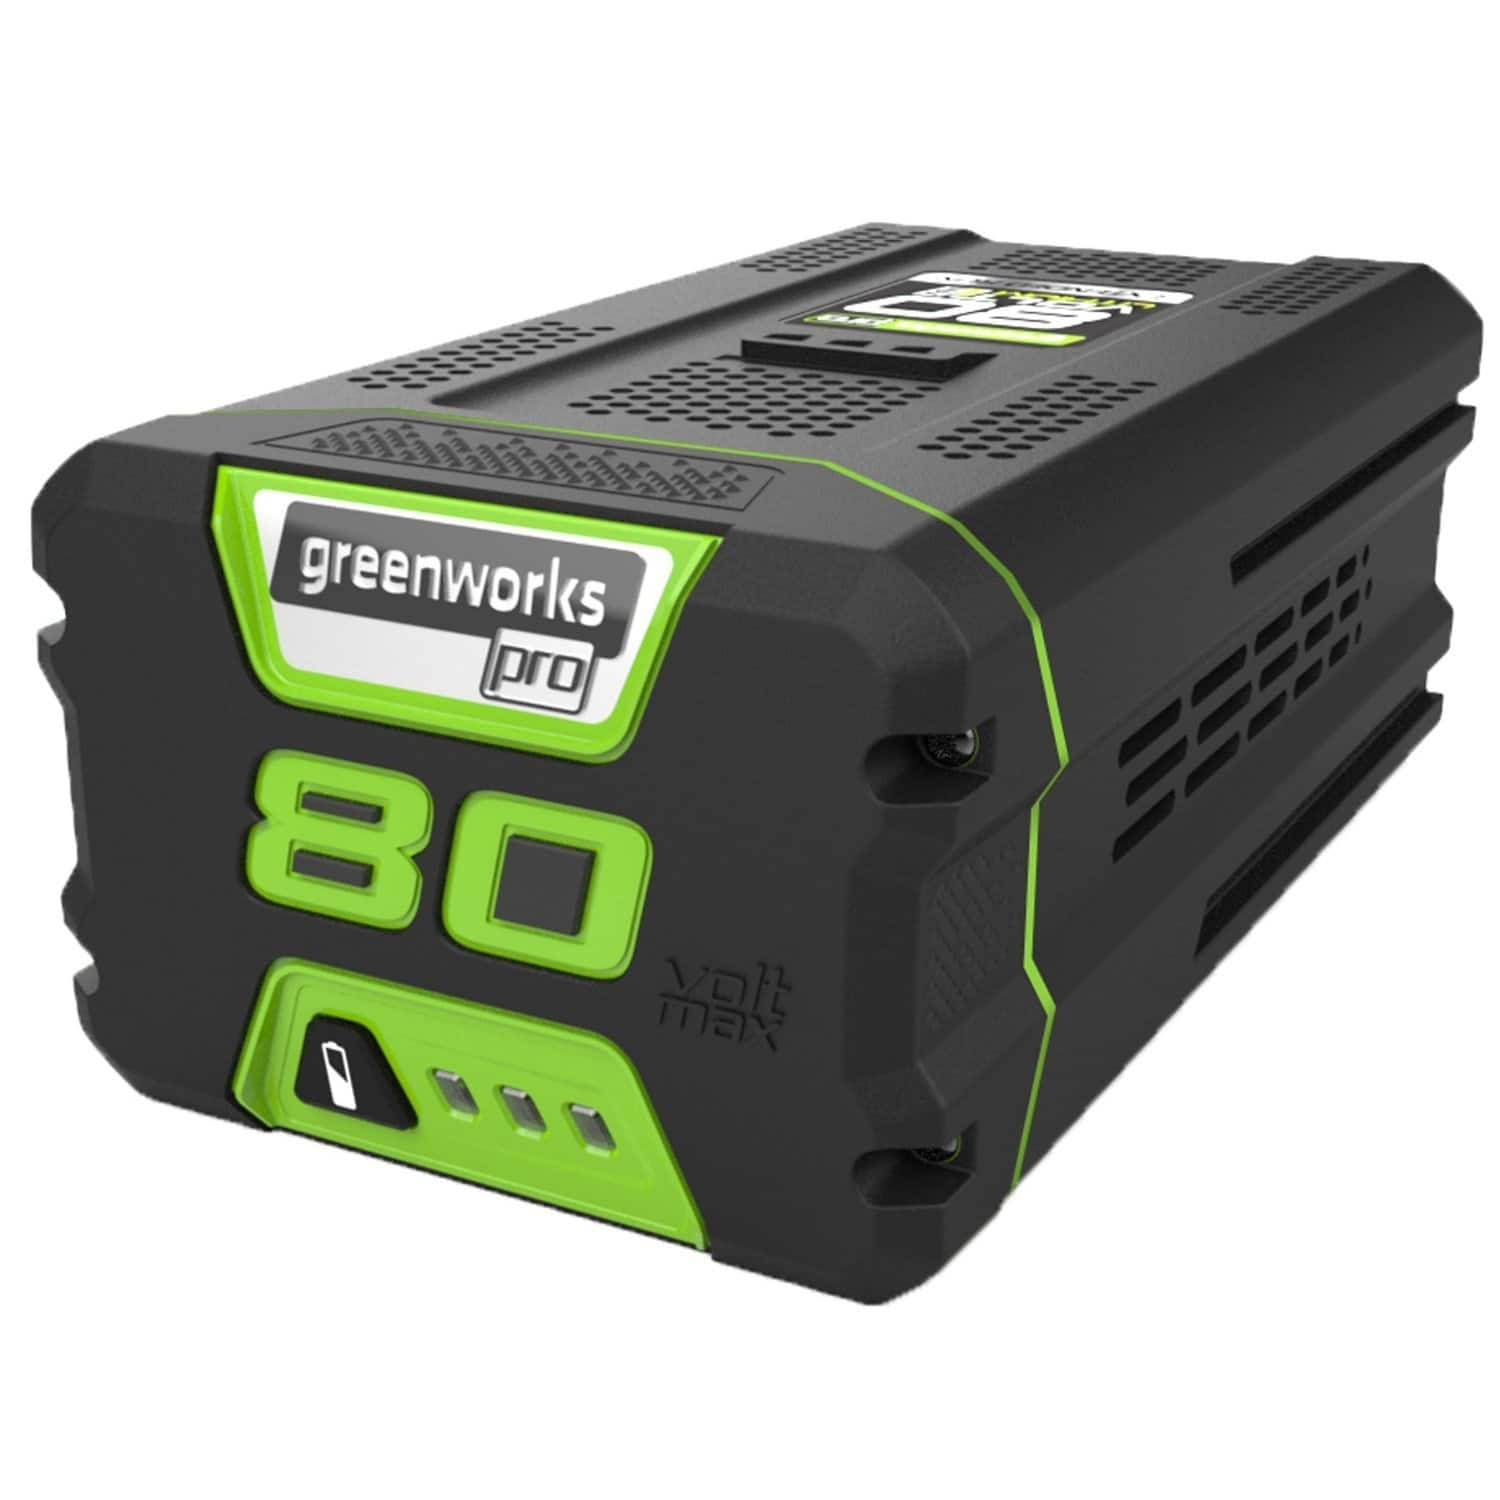 Greenworks PRO 80V 4.0 AH Lithium Ion Battery GBA80400 - $169.61 @ Amazon